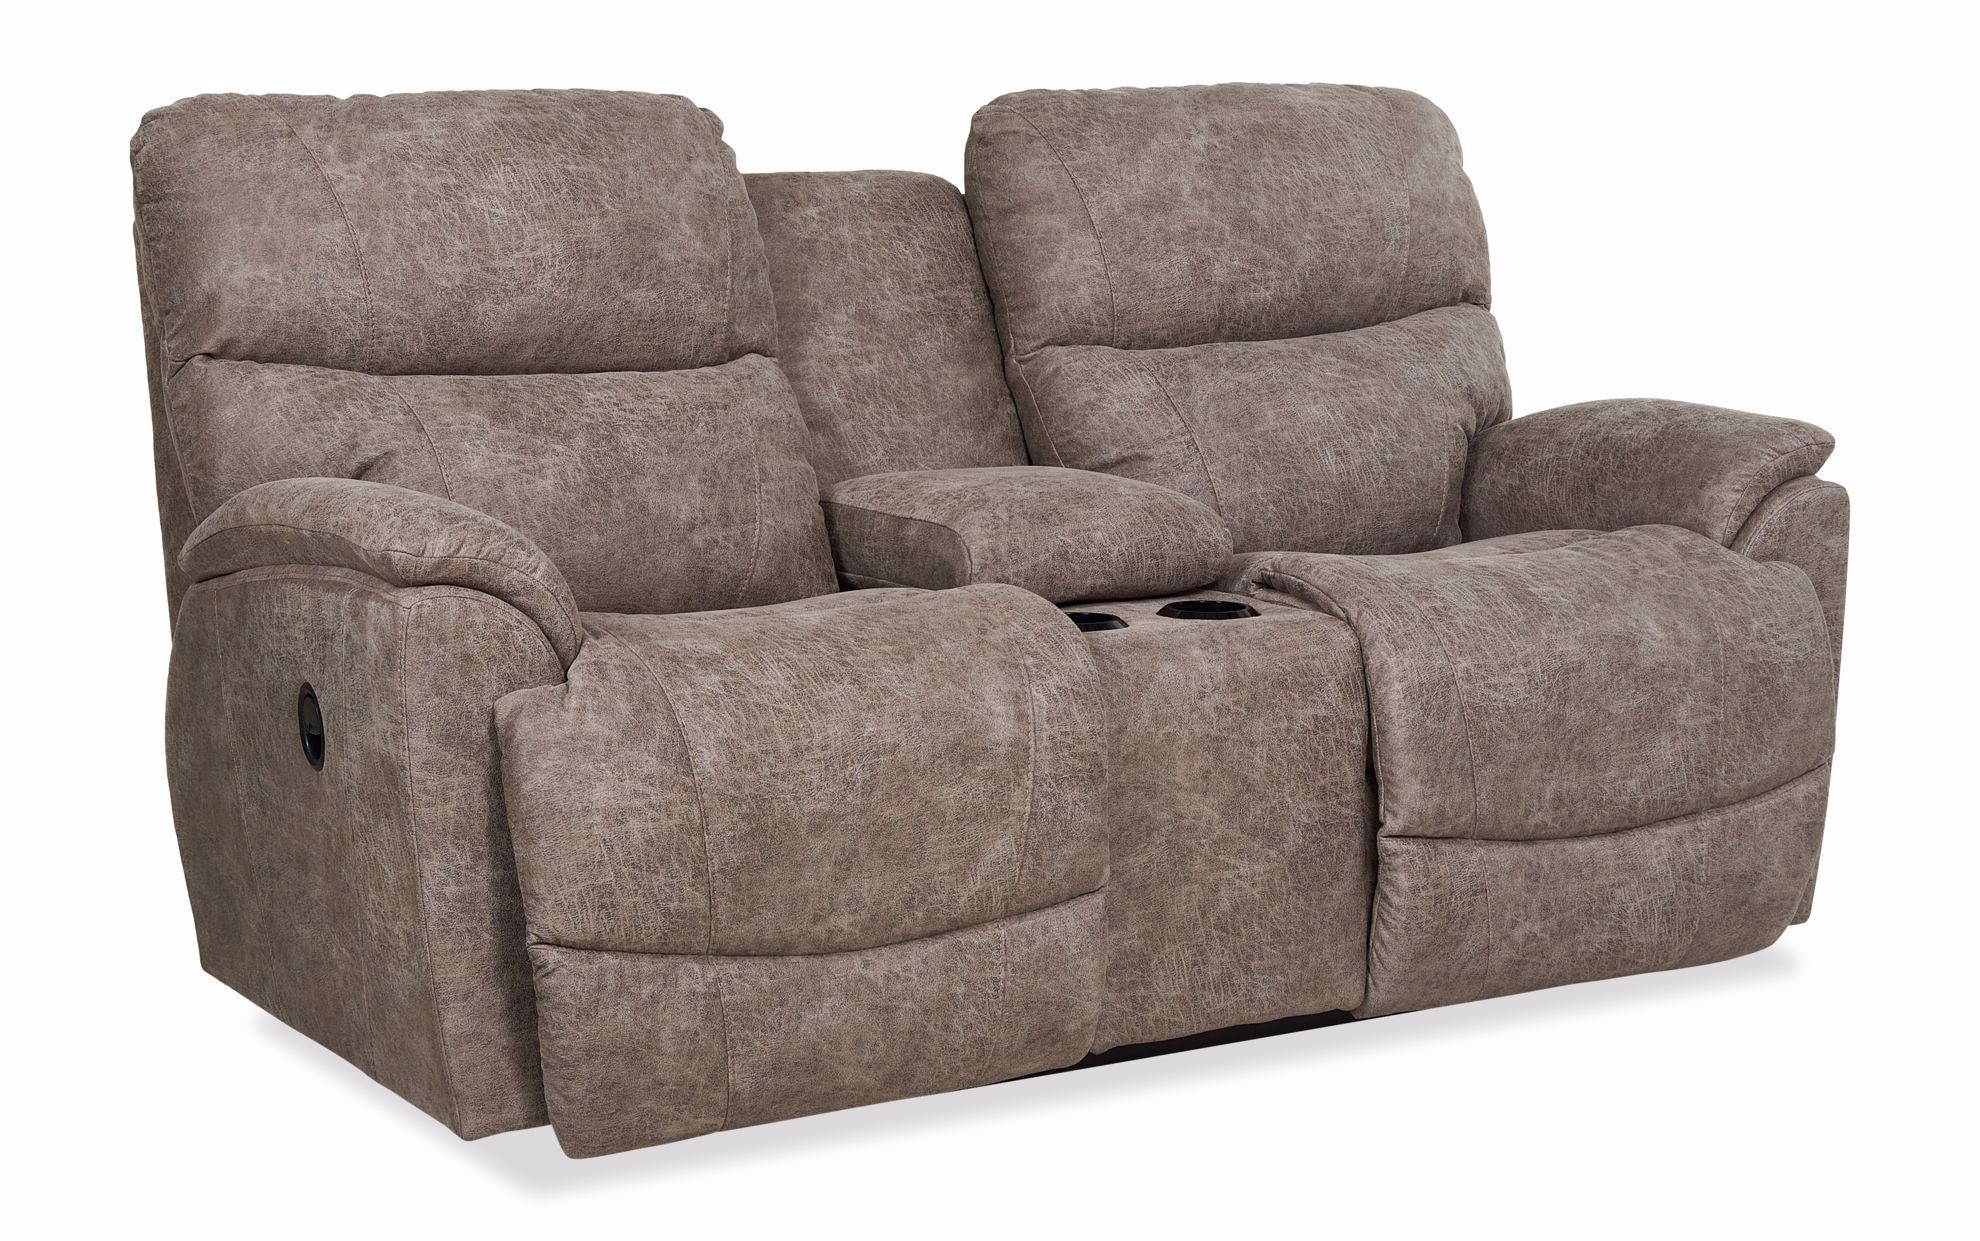 Picture of Trouper Sable Reclining Loveseat with Console